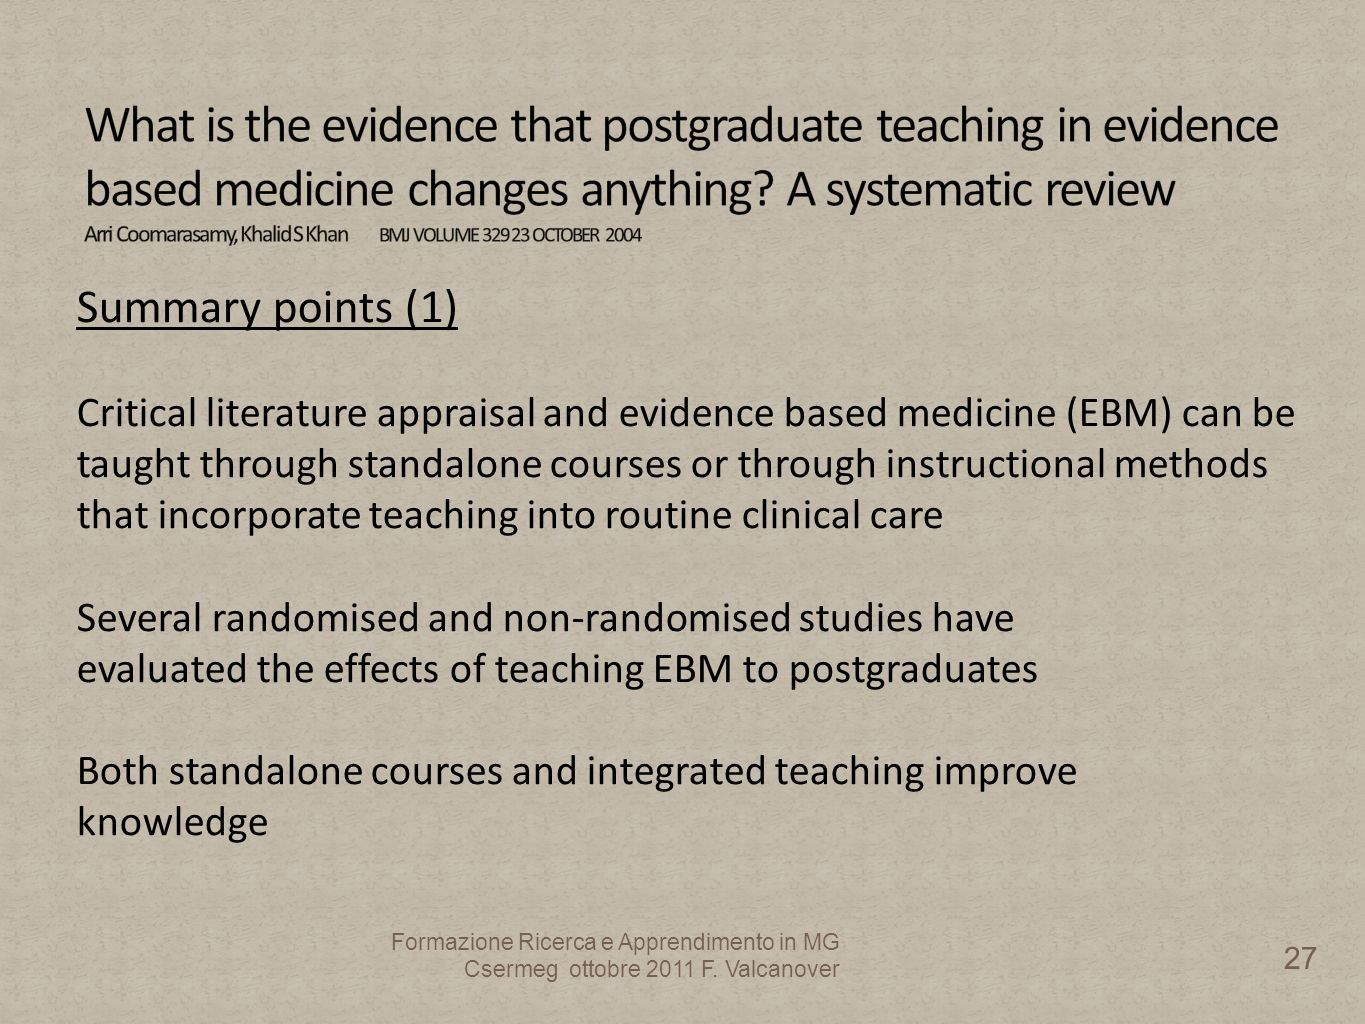 Summary points (1) Critical literature appraisal and evidence based medicine (EBM) can be taught through standalone courses or through instructional methods that incorporate teaching into routine clinical care Several randomised and non-randomised studies have evaluated the effects of teaching EBM to postgraduates Both standalone courses and integrated teaching improve knowledge Formazione Ricerca e Apprendimento in MG Csermeg ottobre 2011 F.